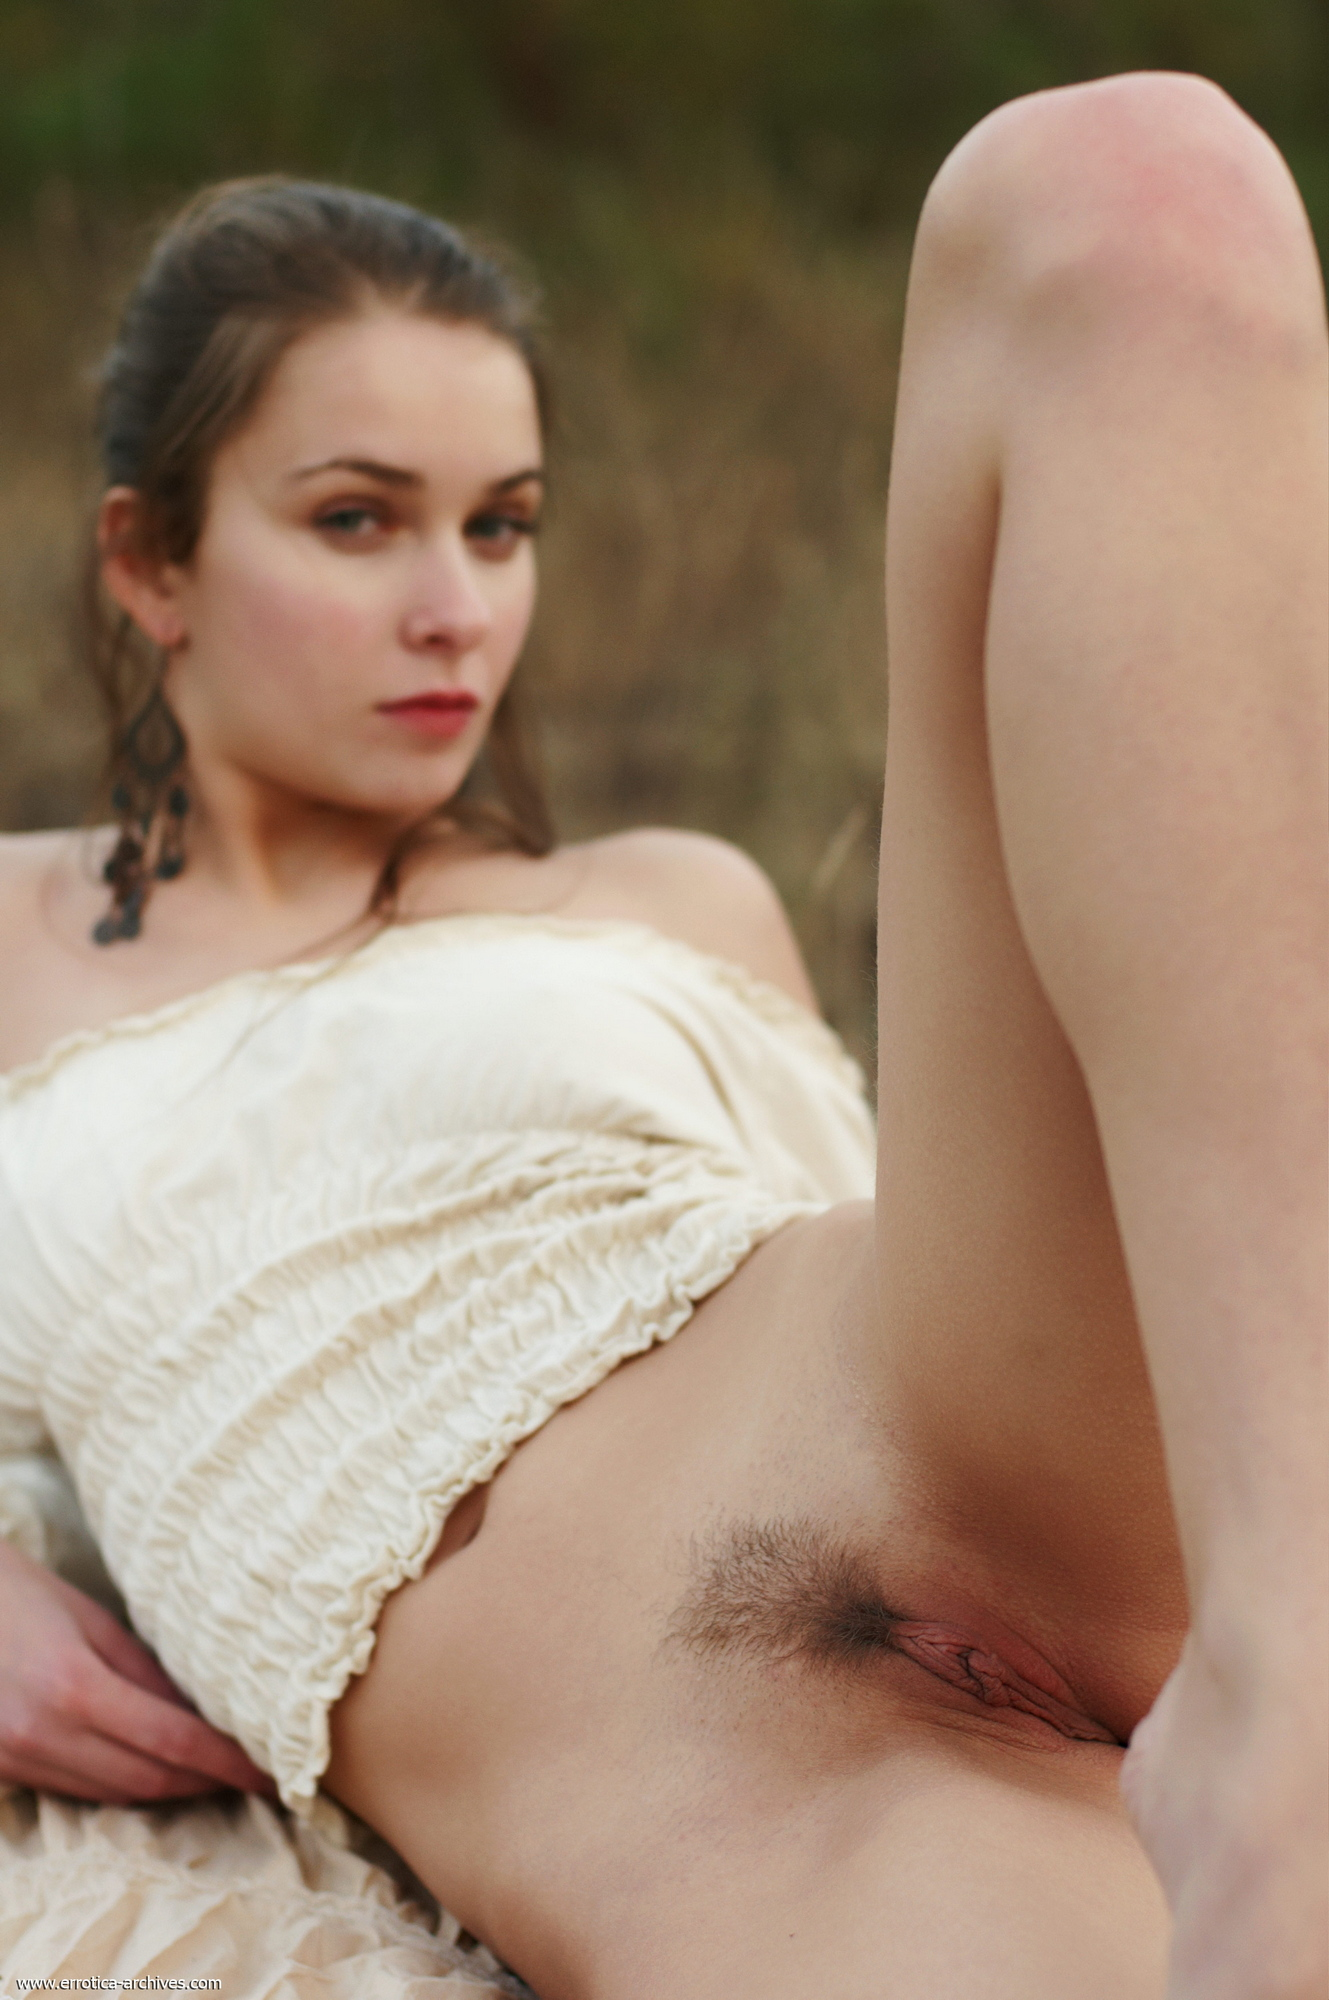 milana-naked-jug-wine-grapes-outdoor-errotica-archives-20